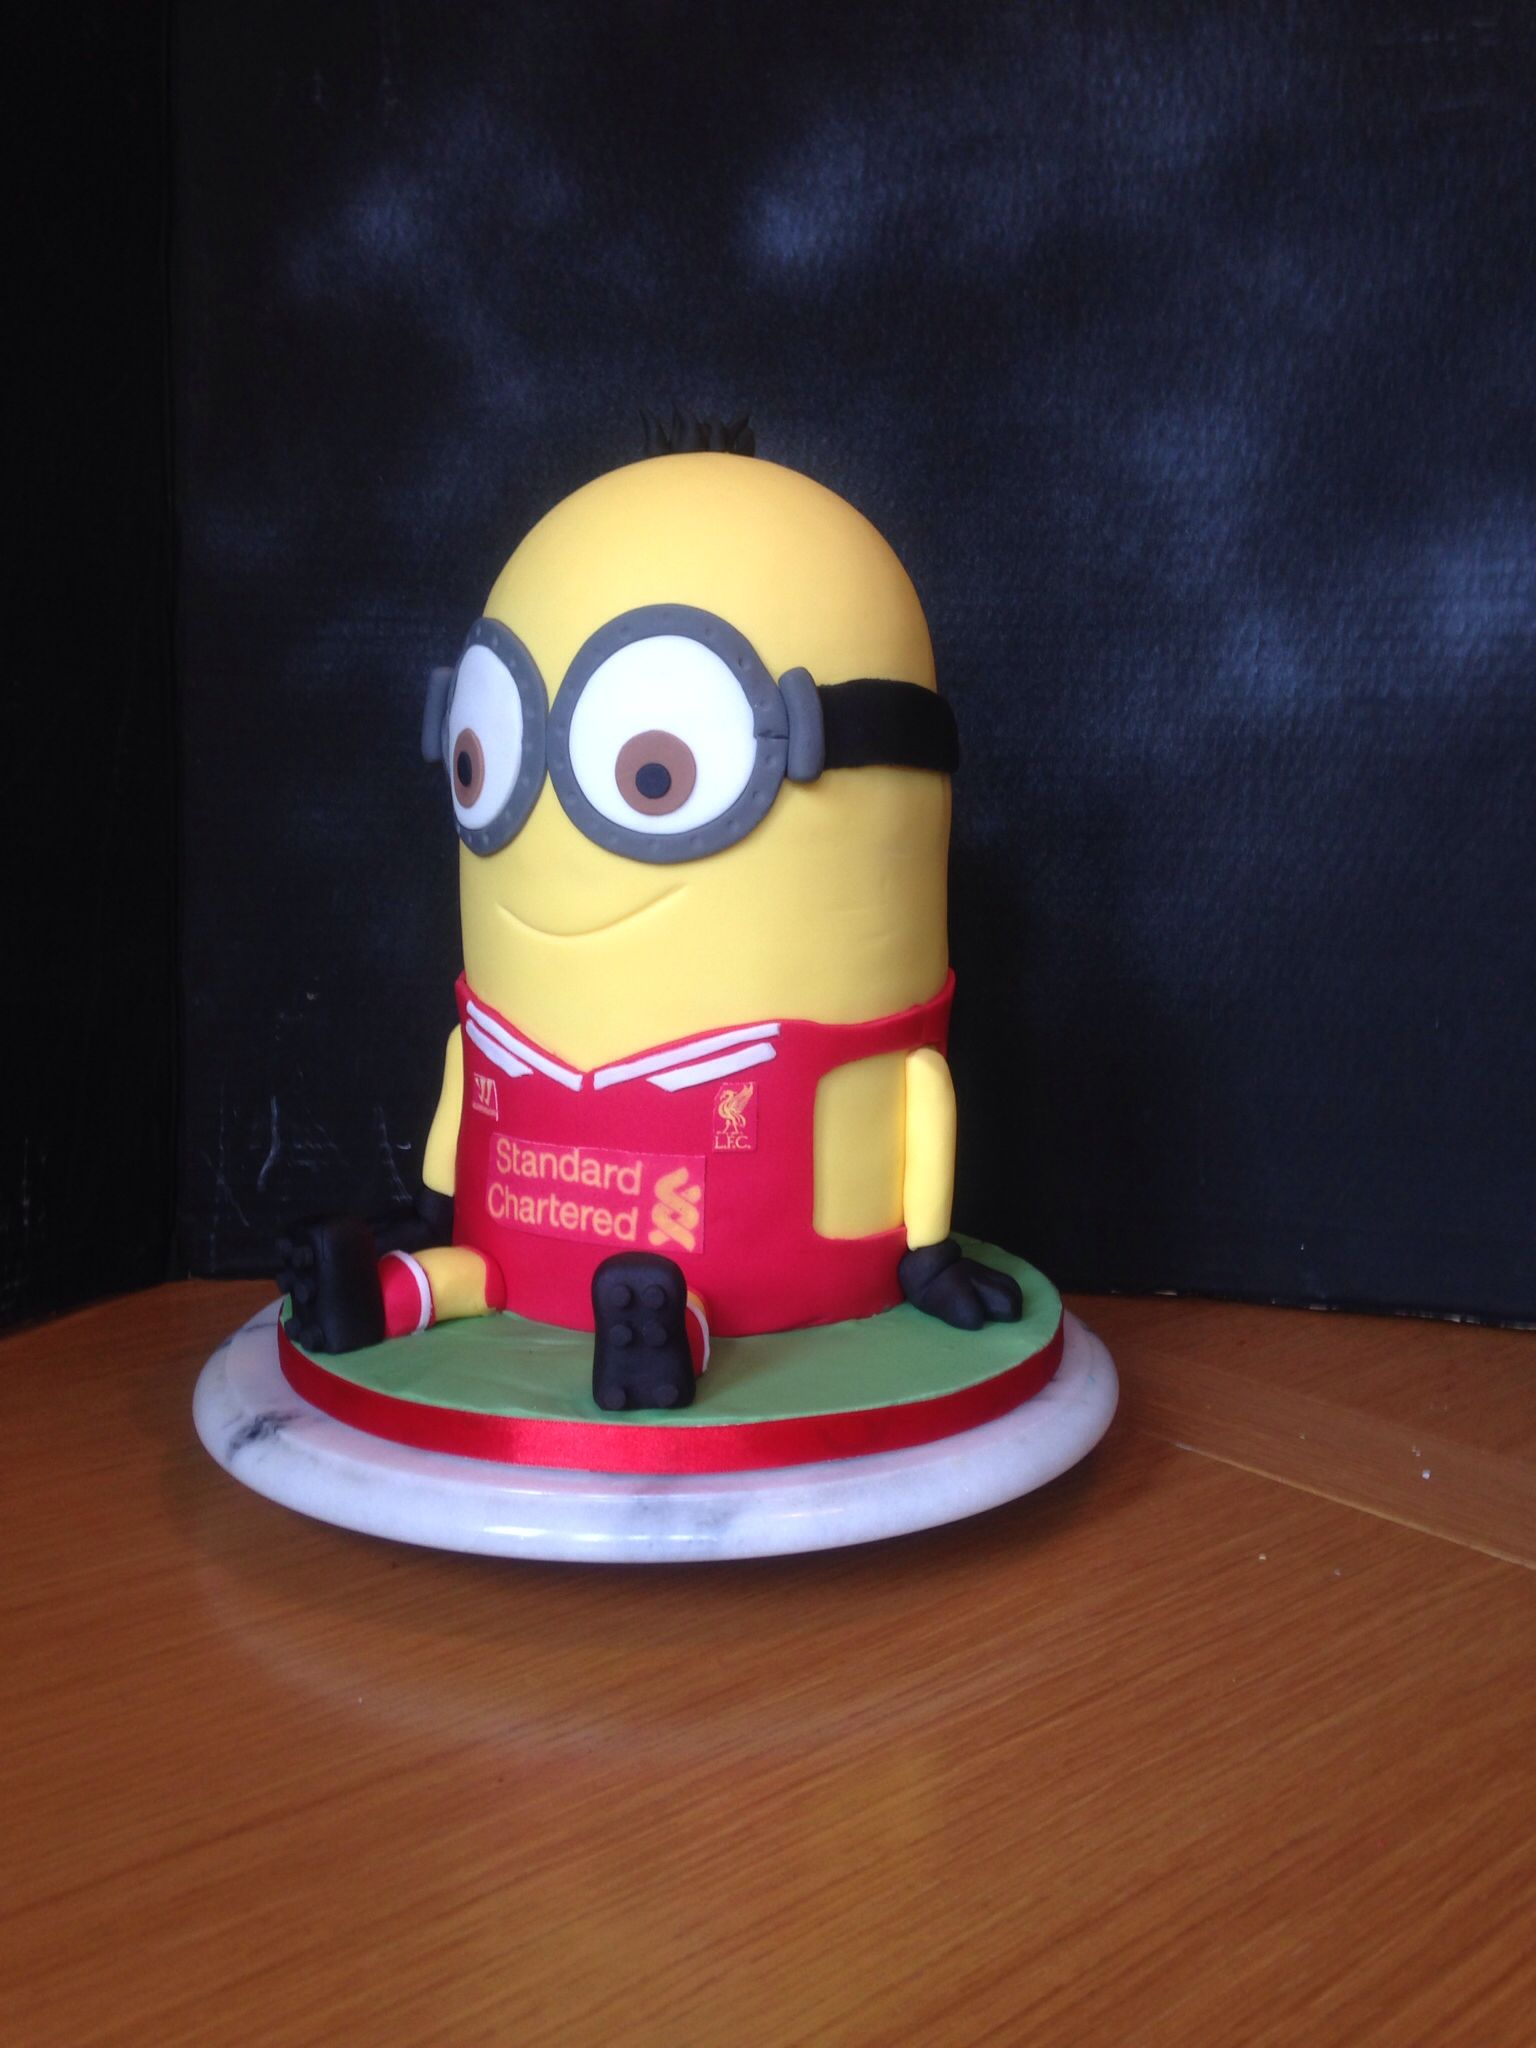 A Liverpool Football Club Minion Cake 14 Inches Tall And